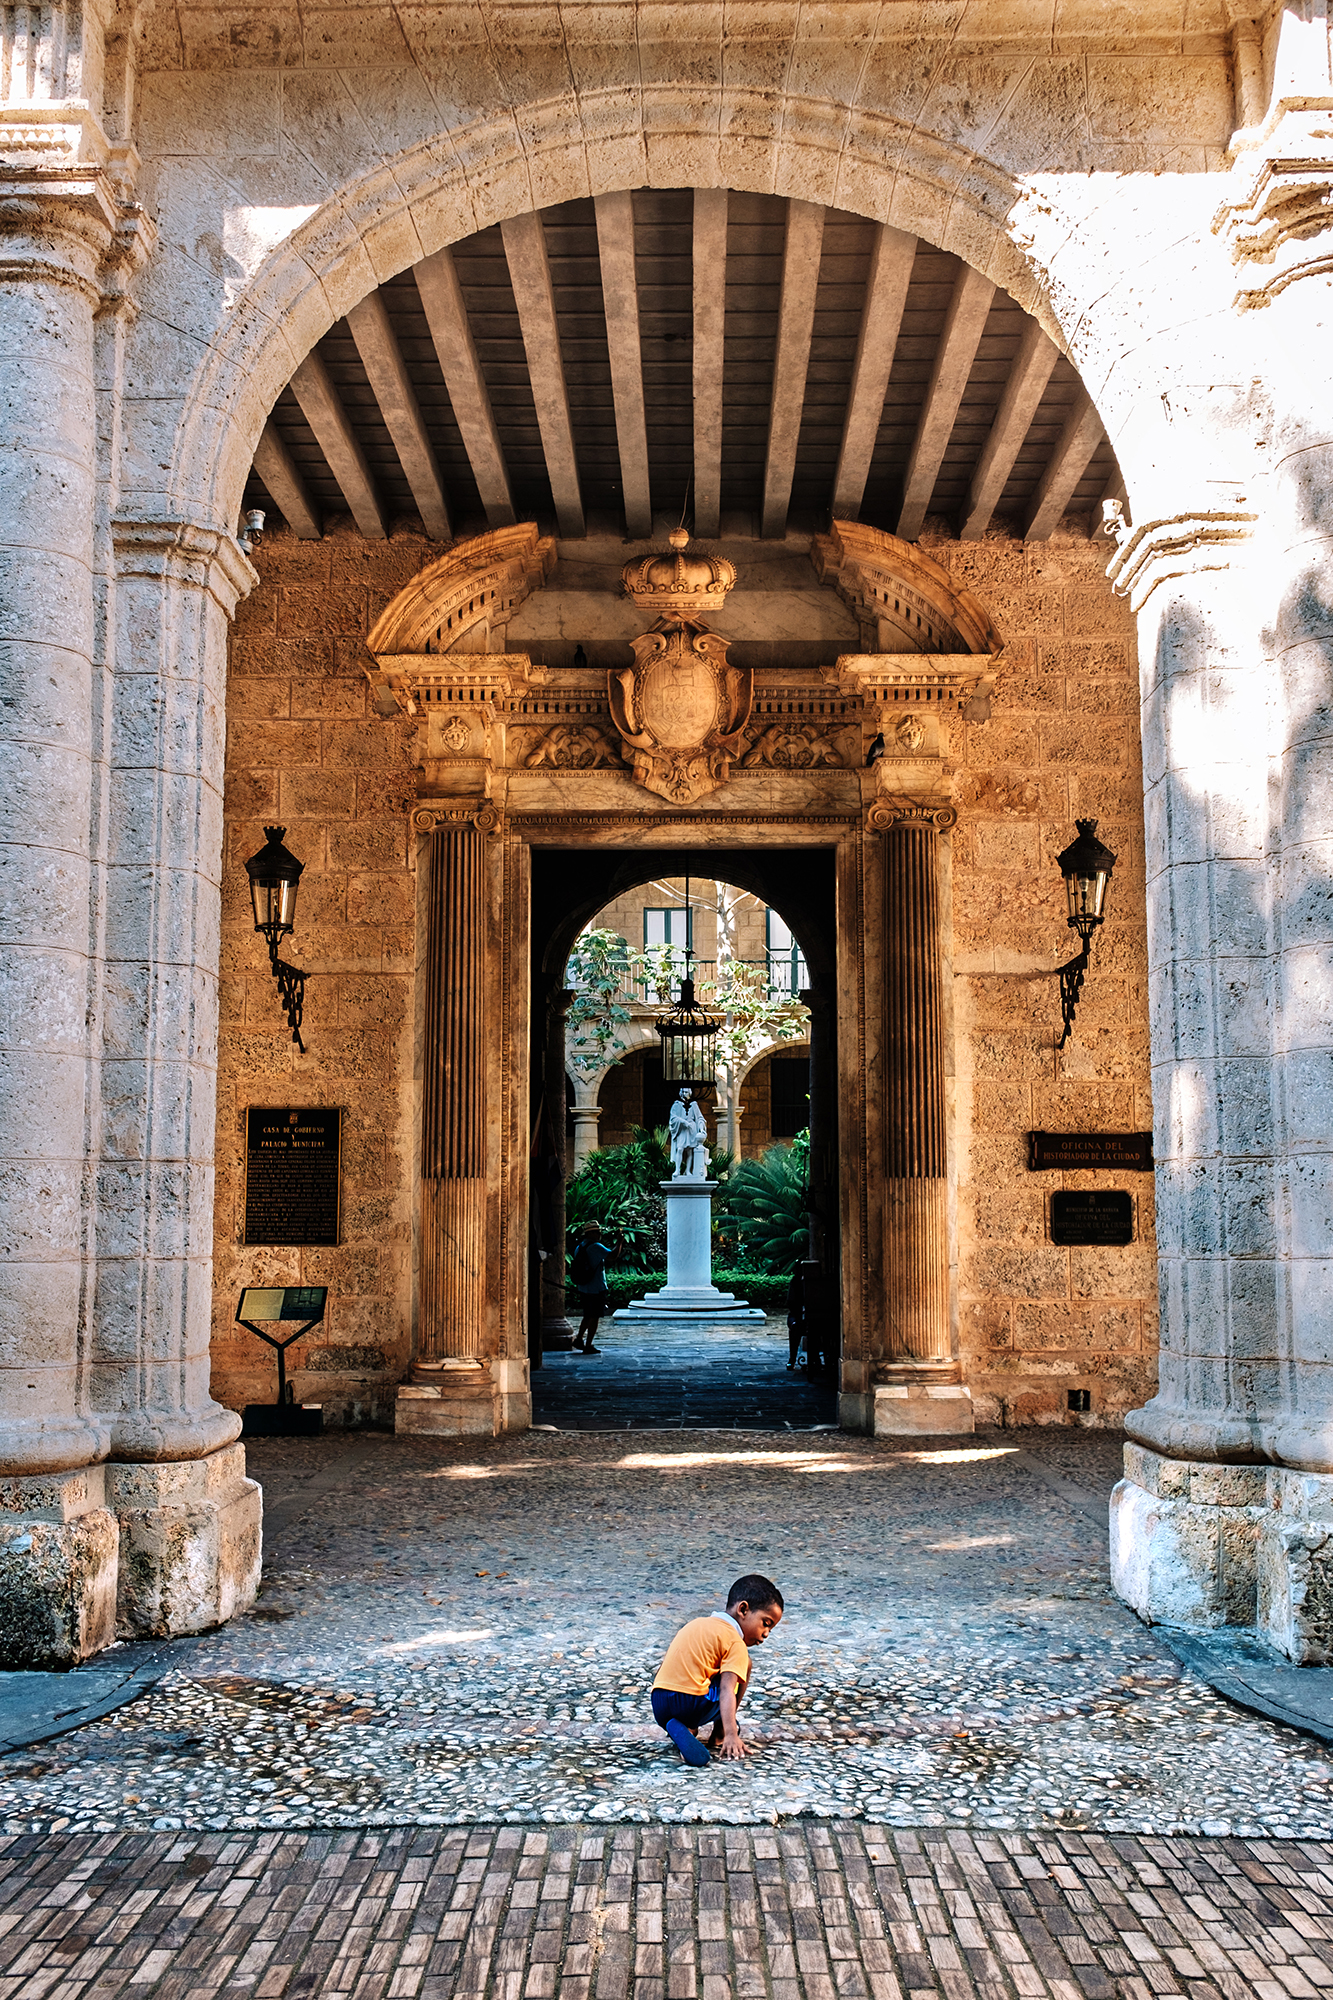 Young kid playing on the floor at the entrance to the Palacio de los Capitanes Generales